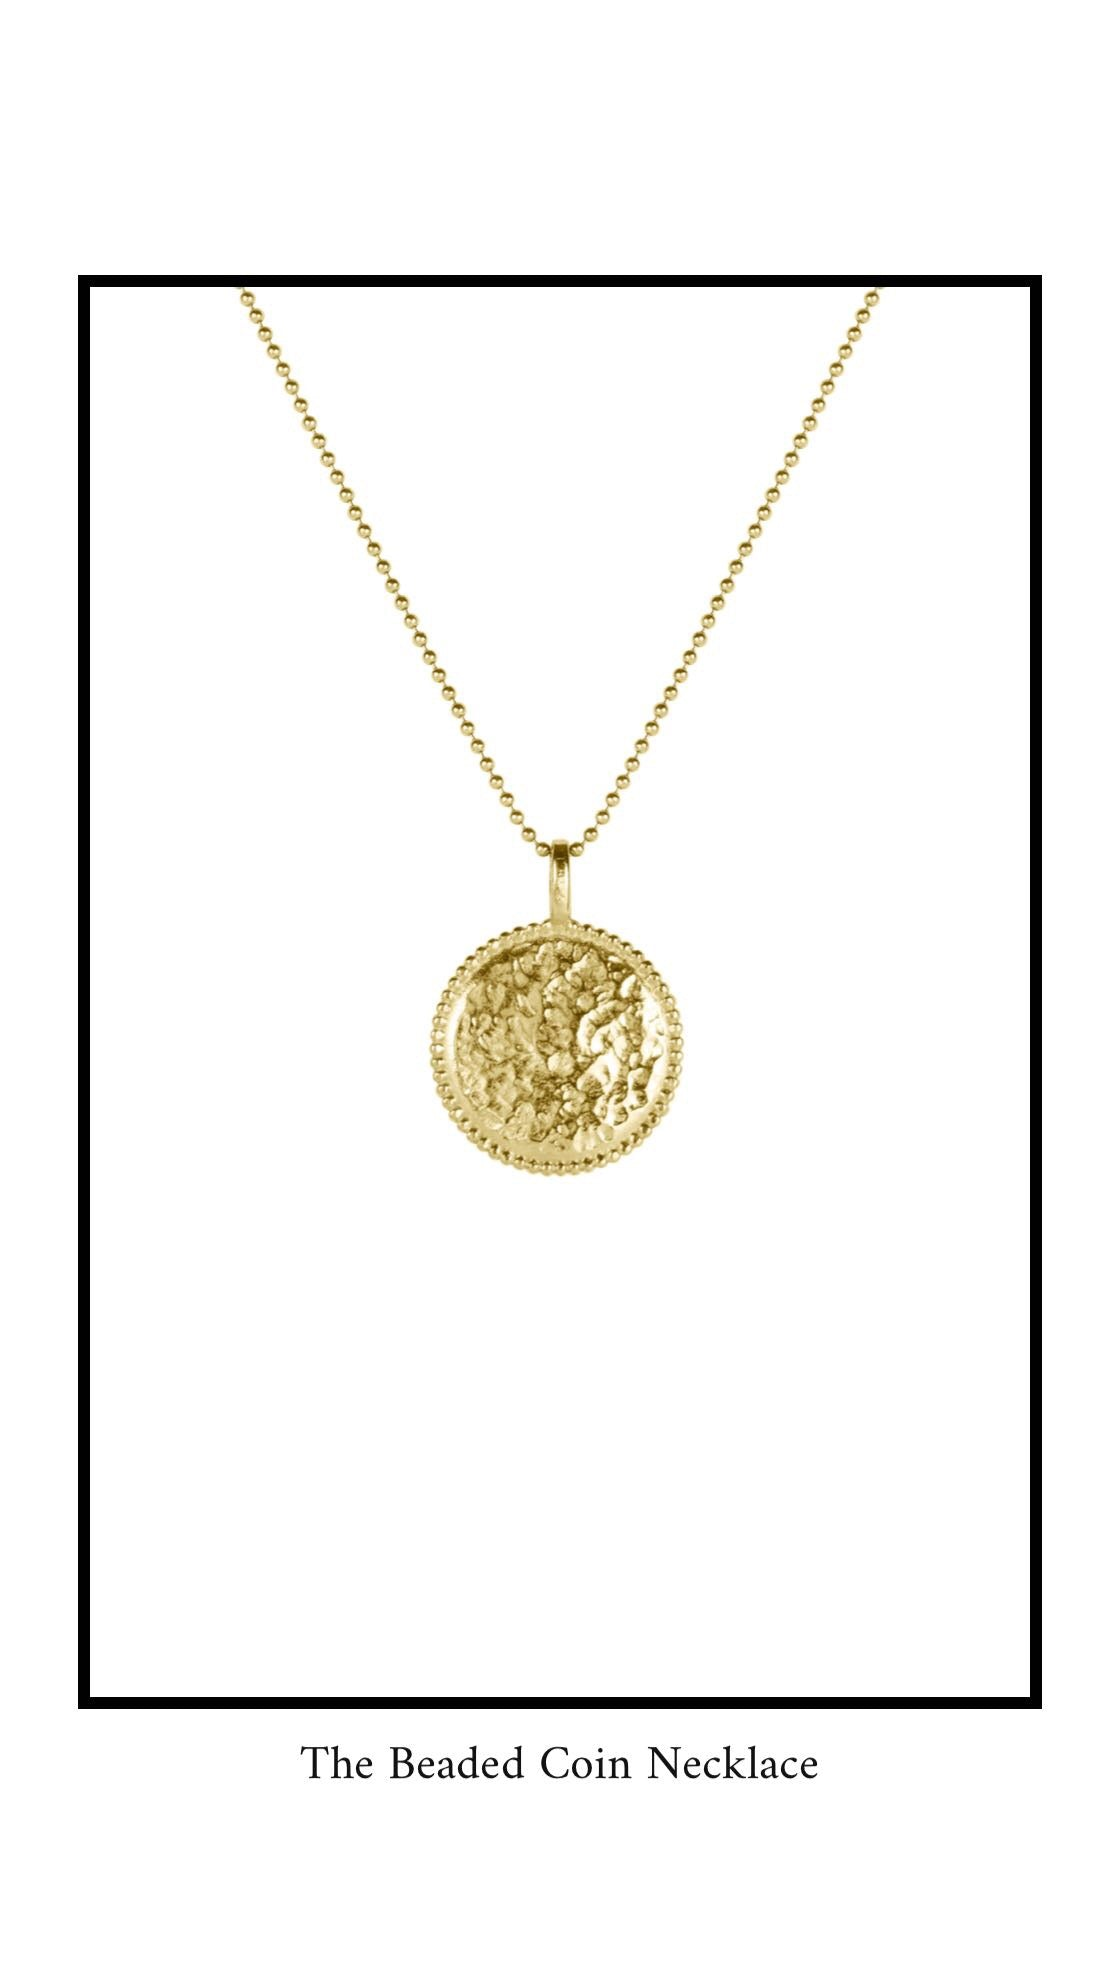 The Beaded Coin Necklace, Katie Dean Jewelry